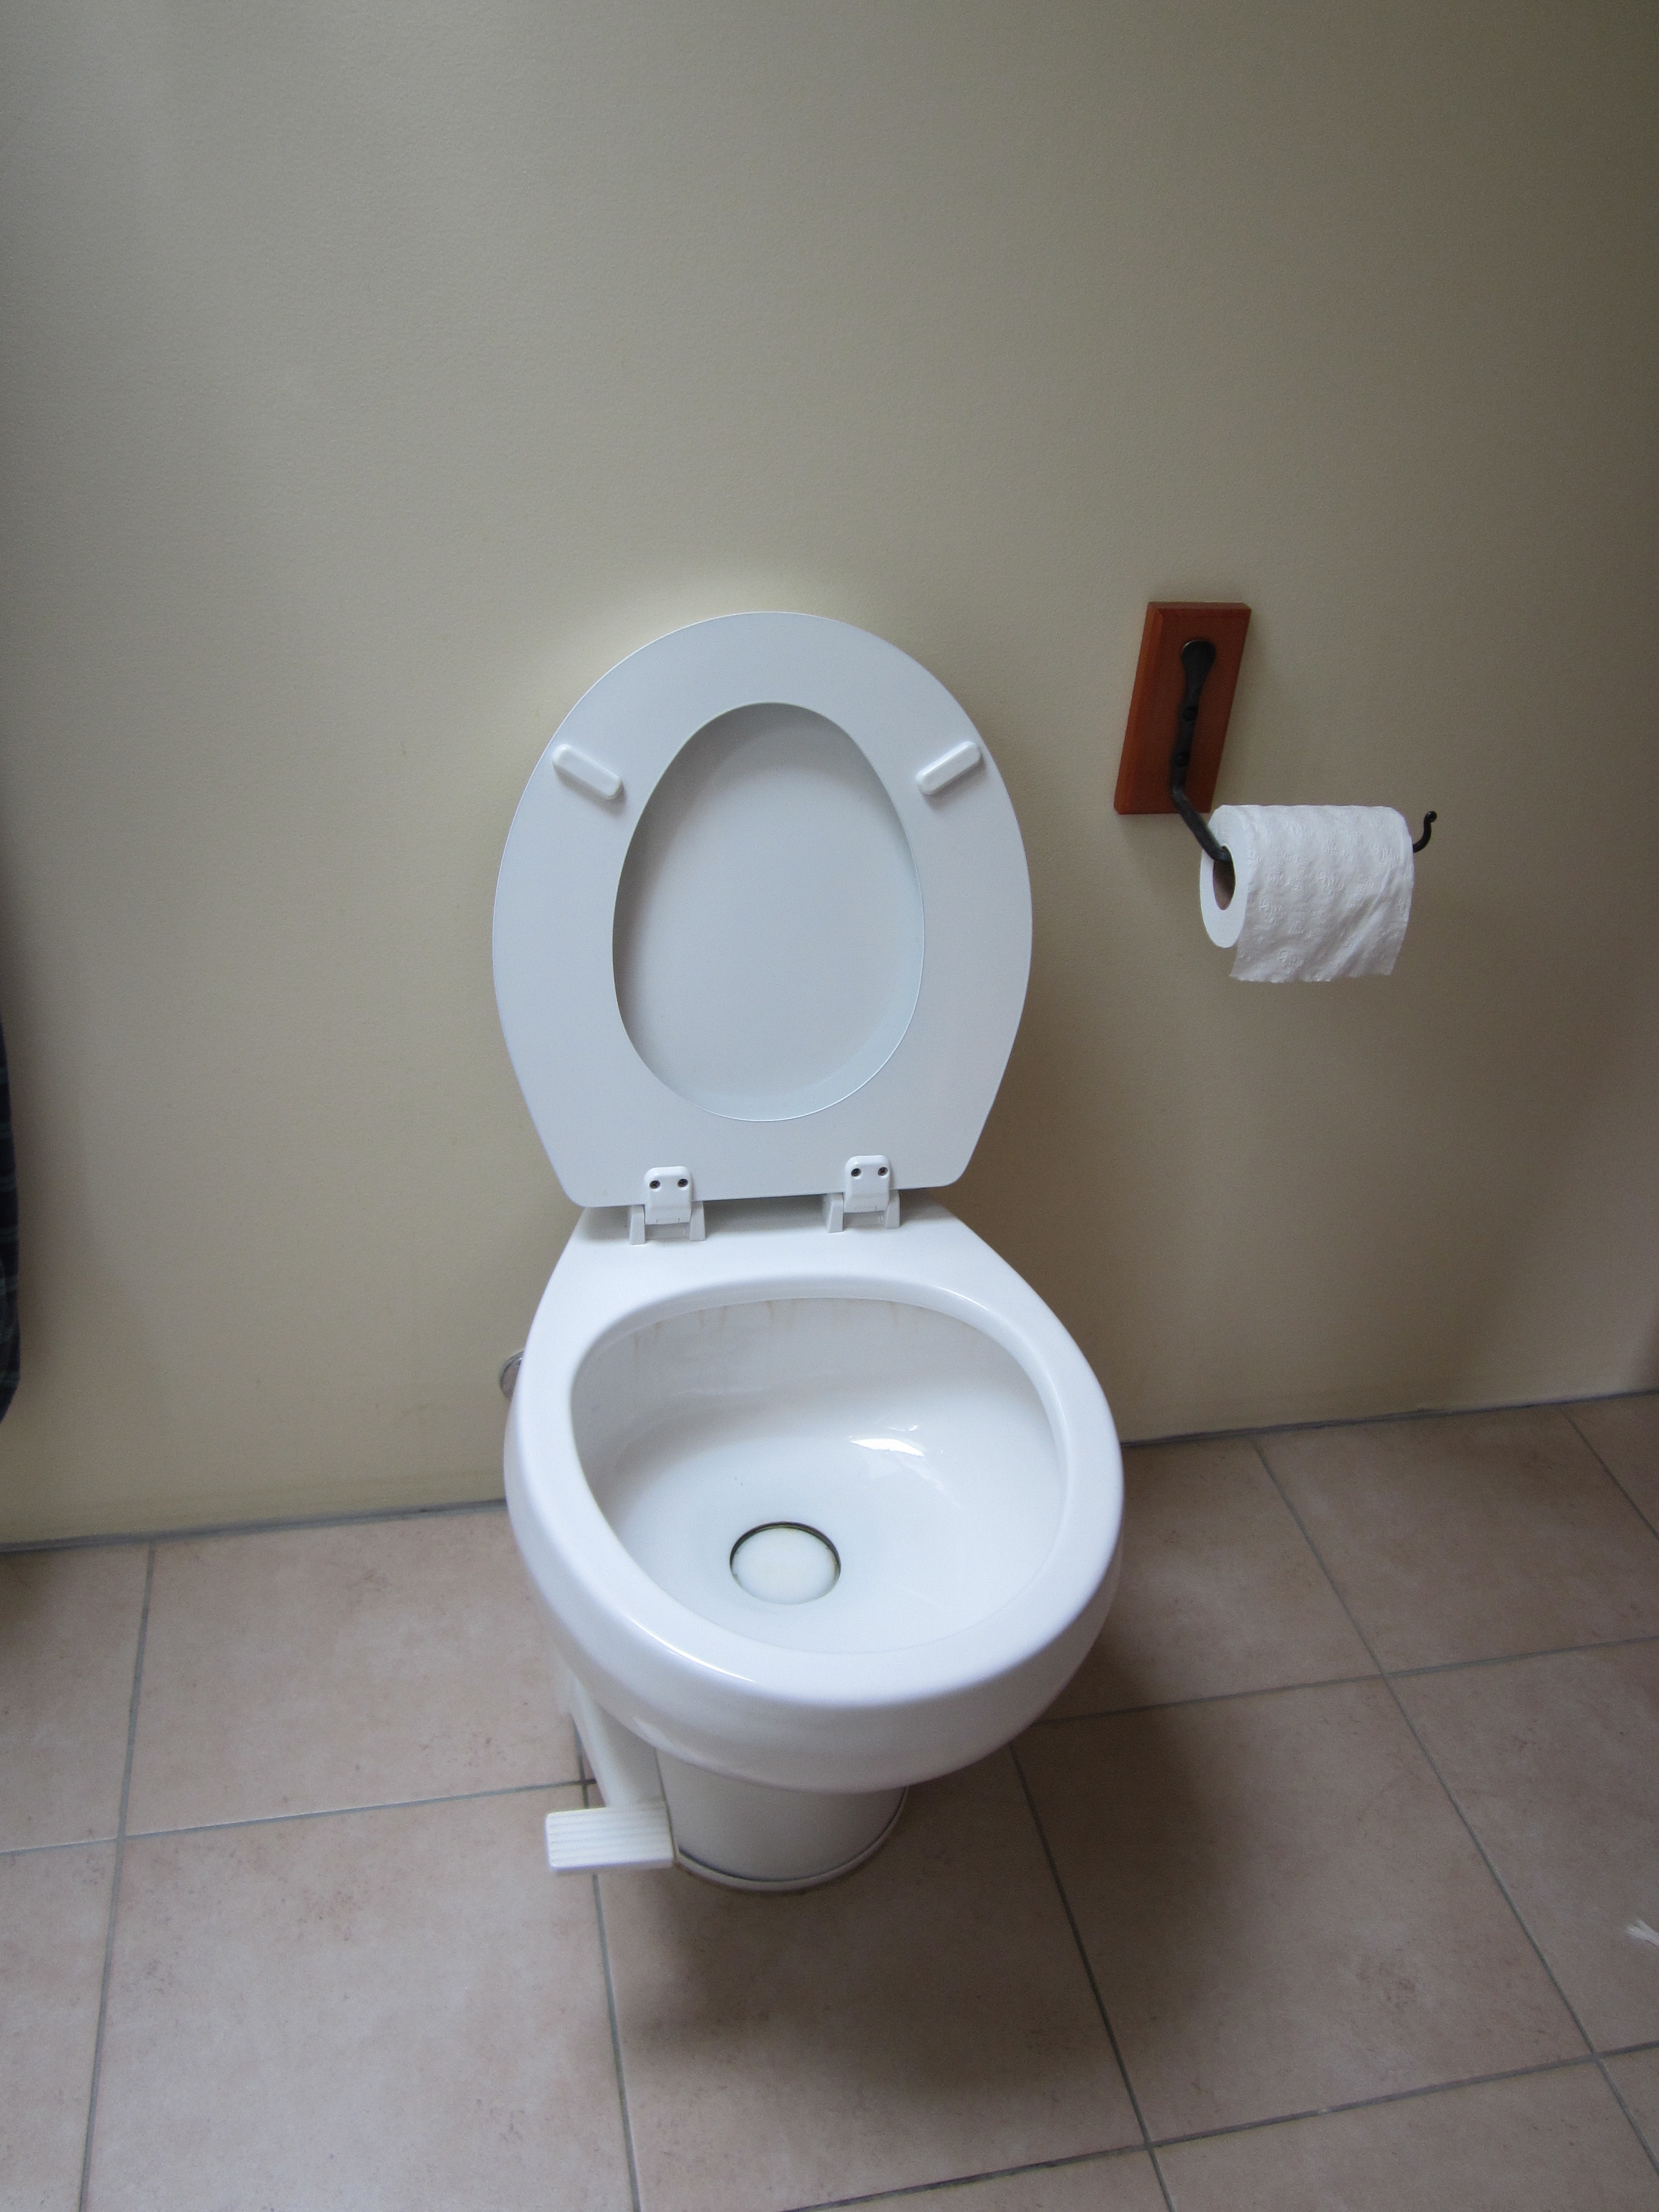 Toilet : vacuum flush toilet uses air to draw the waste and flush water into ...